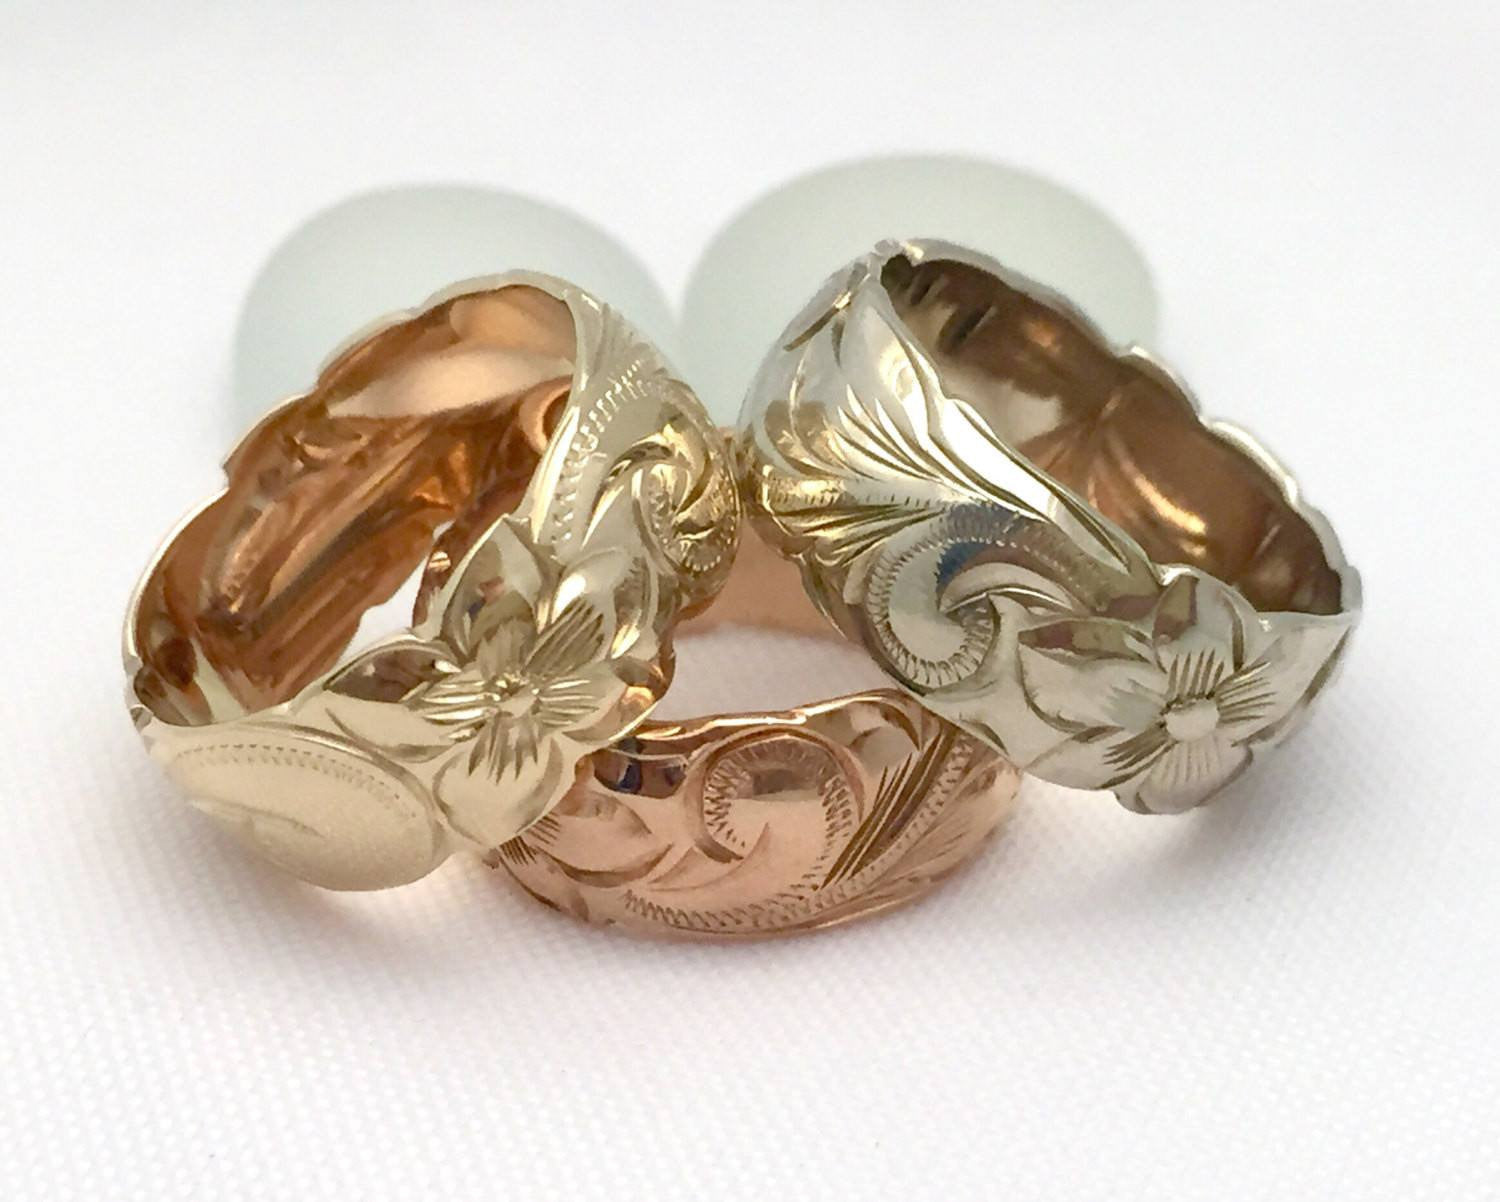 Hawaiian Ring - Hand Engraved 14k White & Pink Rose Gold Barrel Ring (8mm width, Barrel style) - Aolani Hawaii - 1